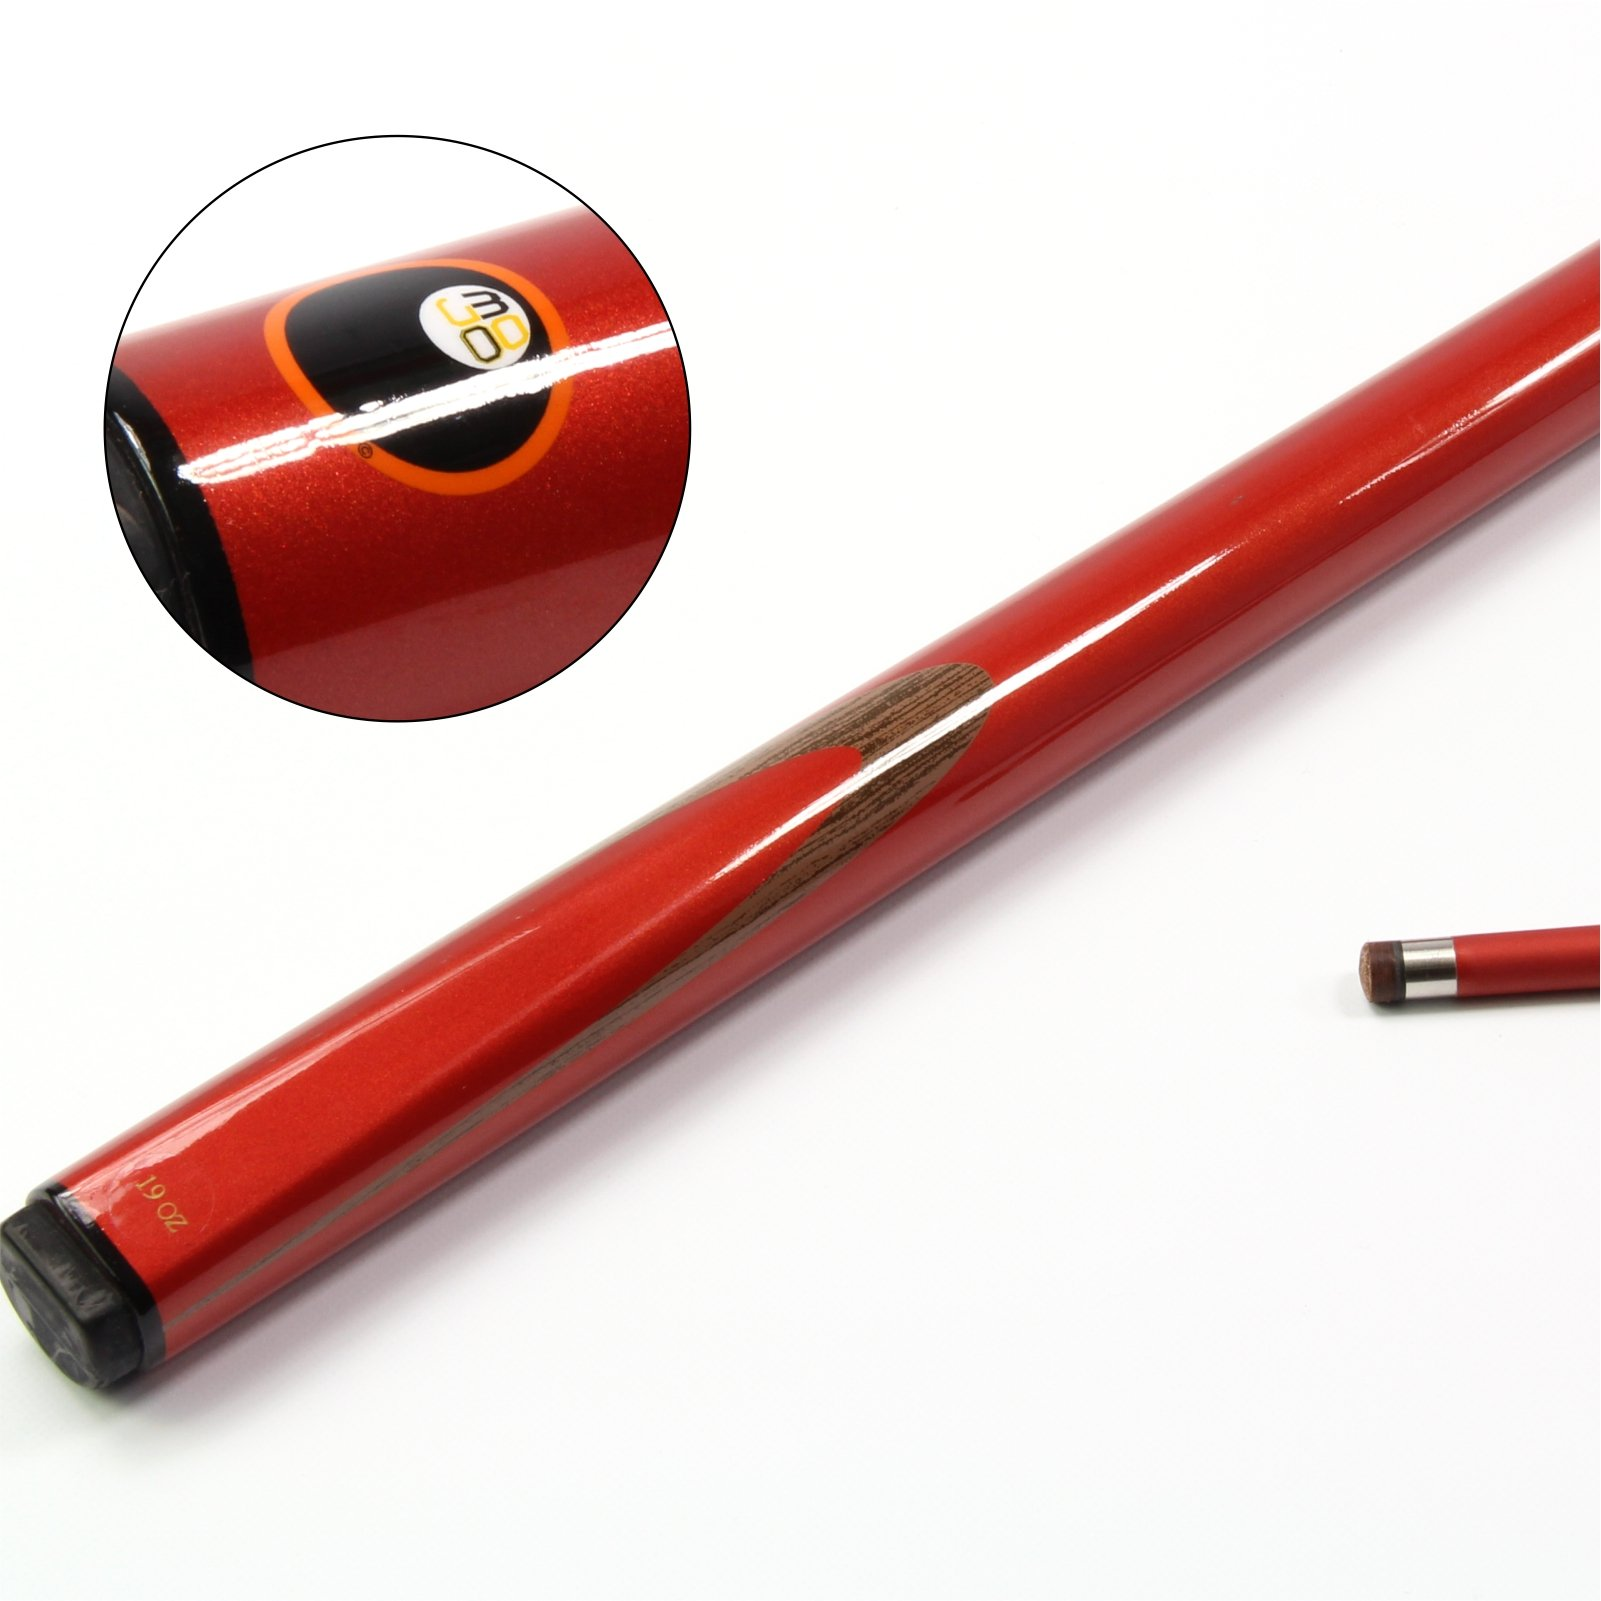 Mojo rojo 2 pc de grafito de carbono billar - 9 mm punta: Amazon.es: Deportes y aire libre